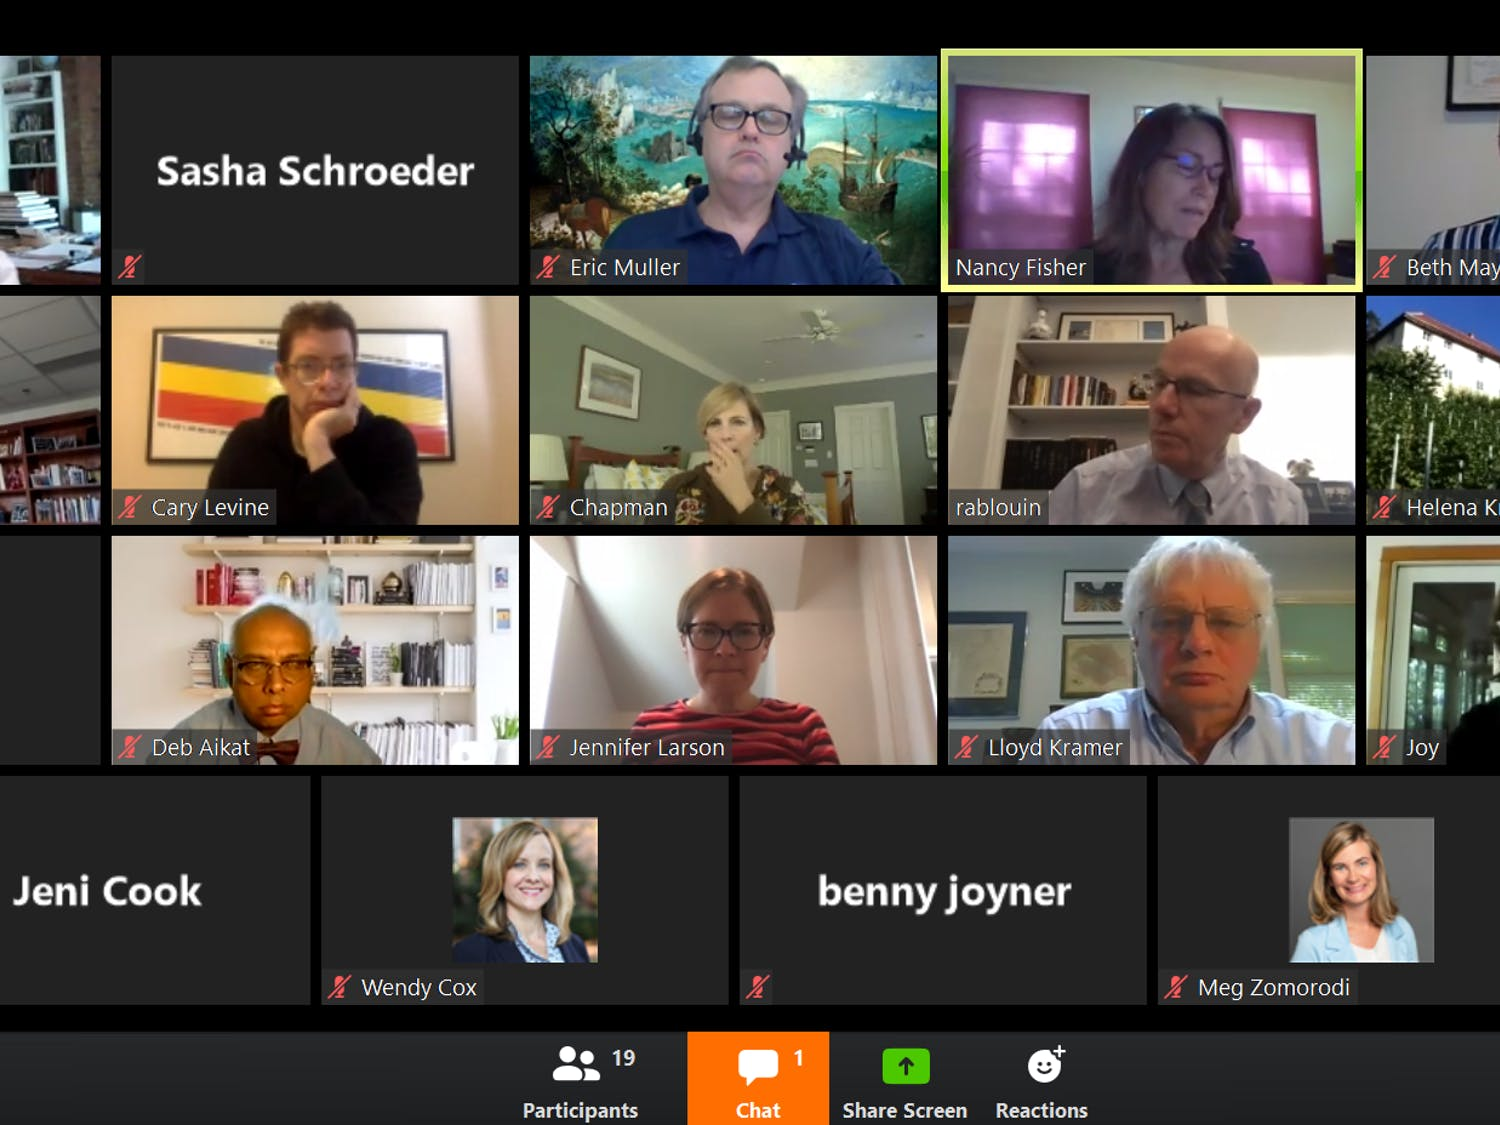 The Faculty Executive Committee met virtually Monday, April 27, 2020 to discuss concerns over the COVID-19 pandemic and its effects on the University's budget, as well as the possibility of furloughs.